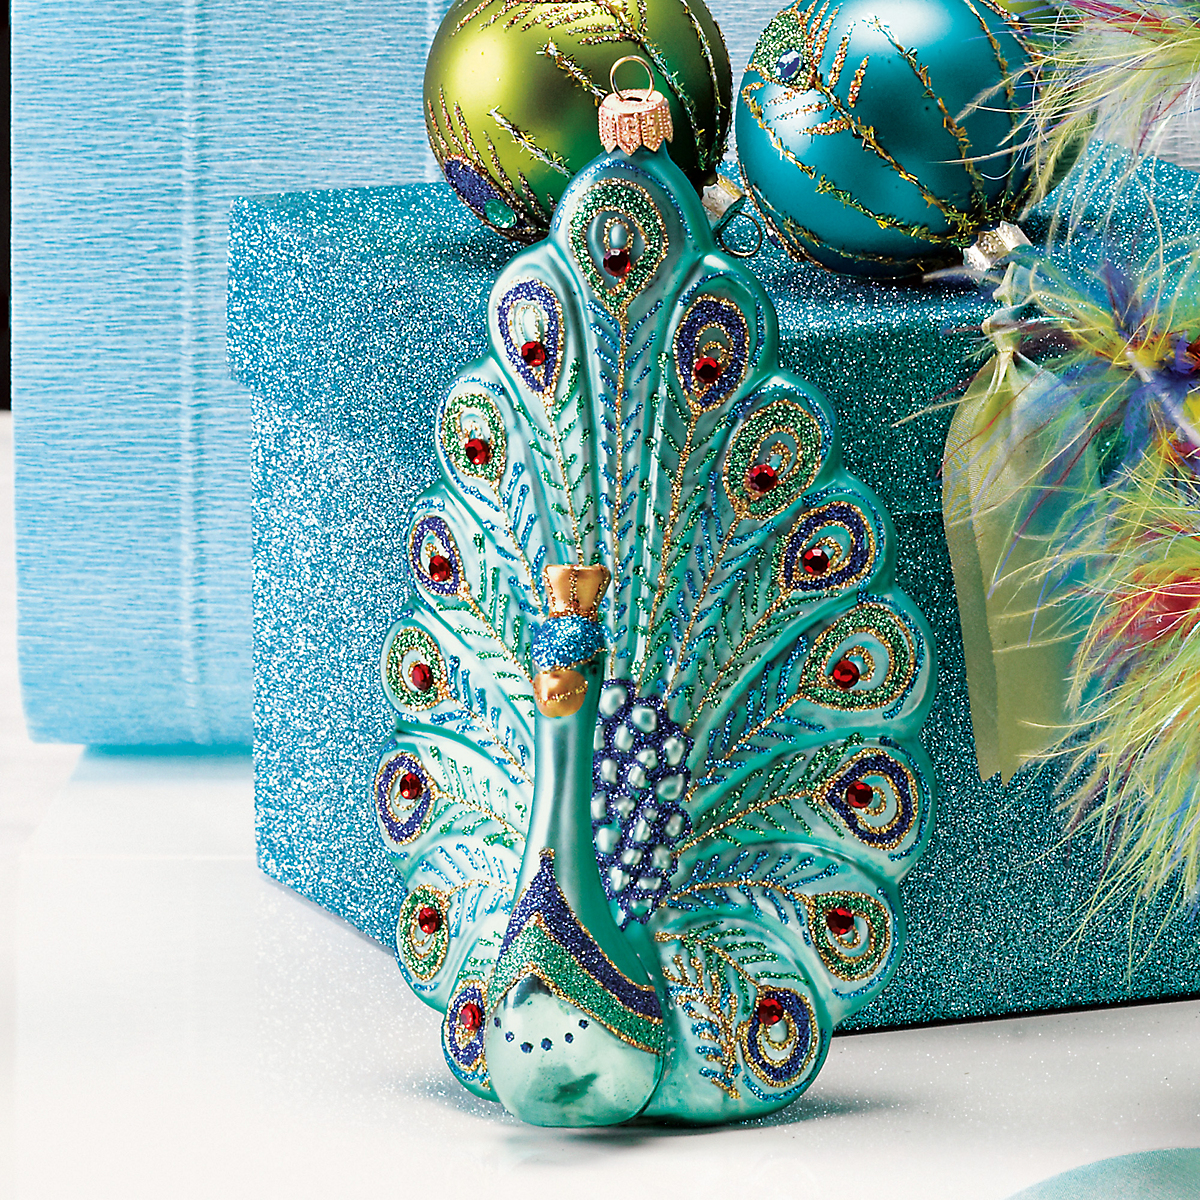 Glass Proud Peacock Ornament